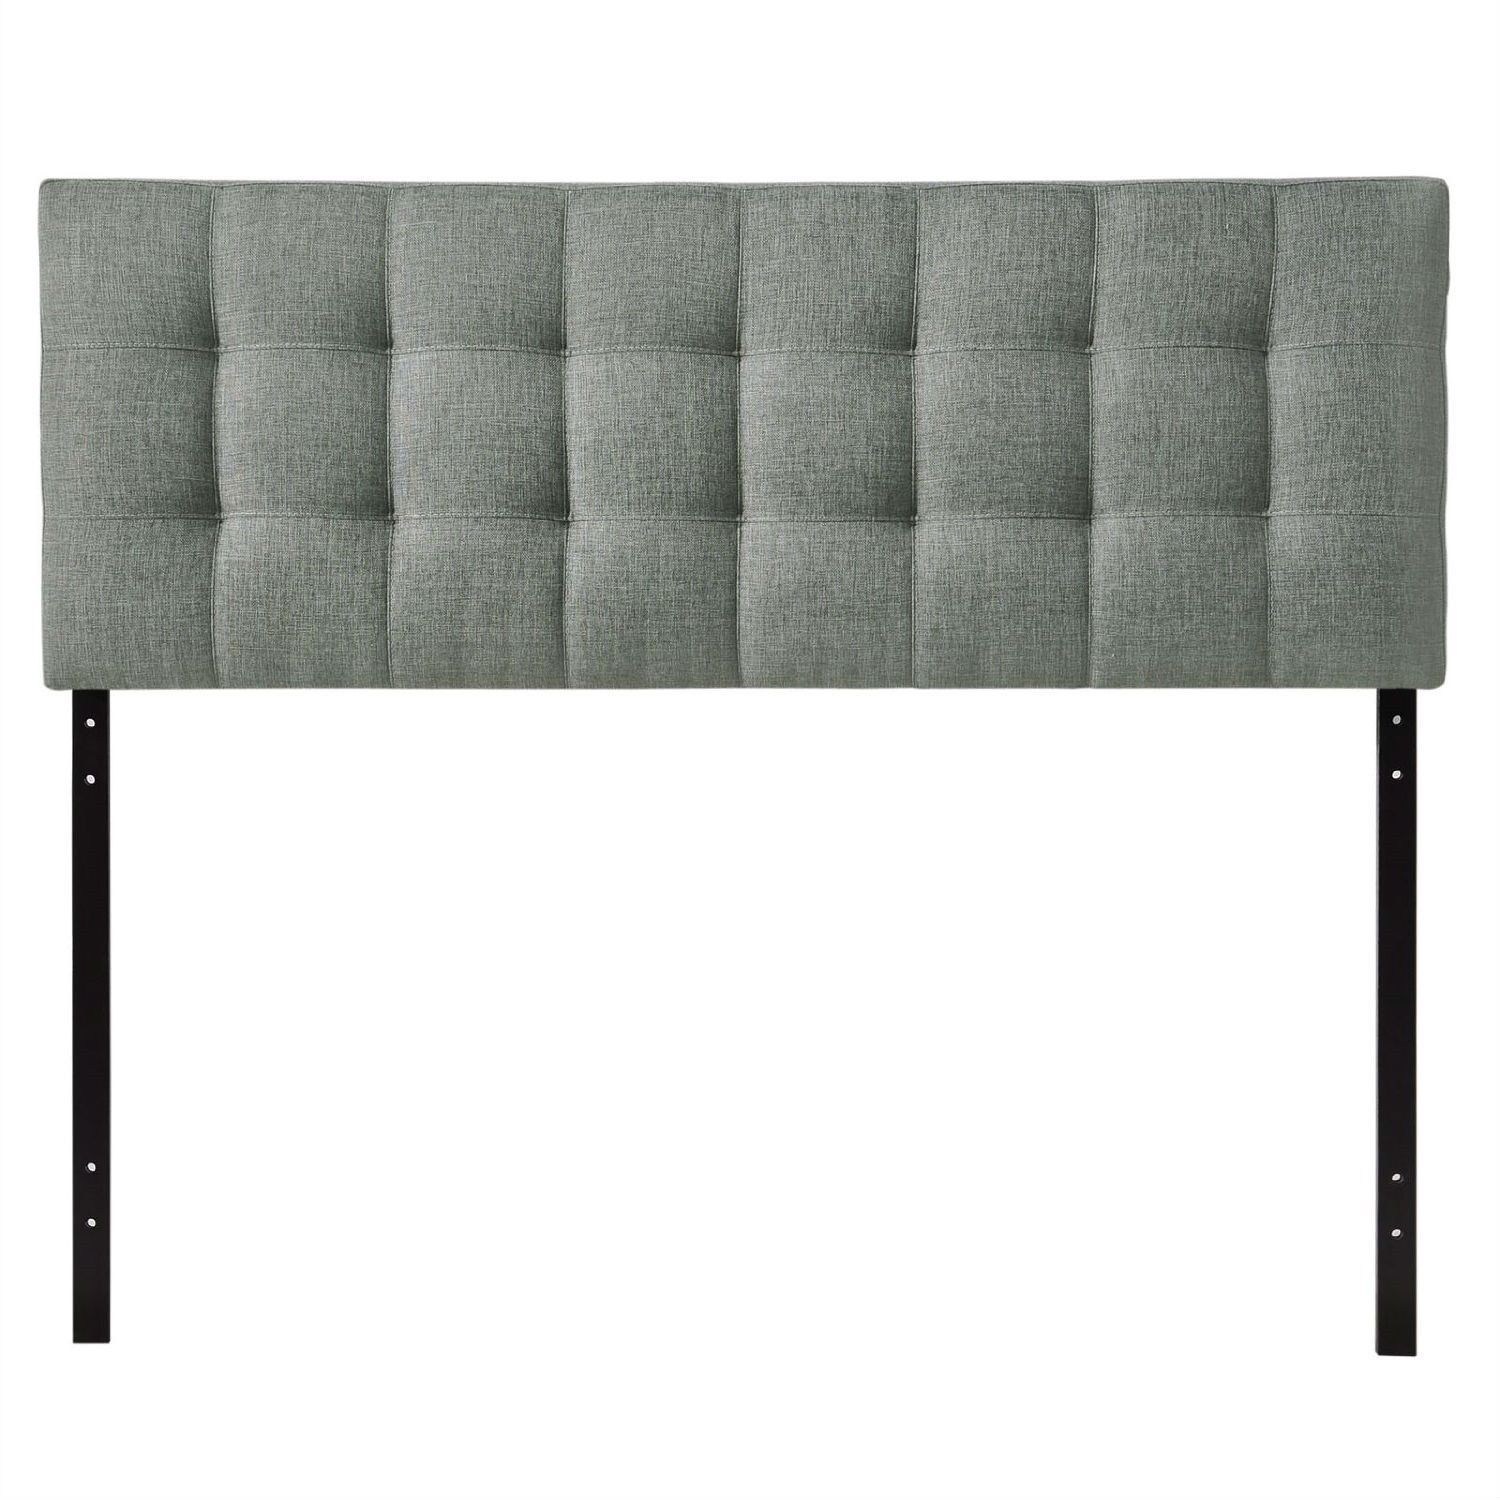 king size grey fabric modern buttontufted upholstered headboard  - king size grey fabric modern buttontufted upholstered headboard